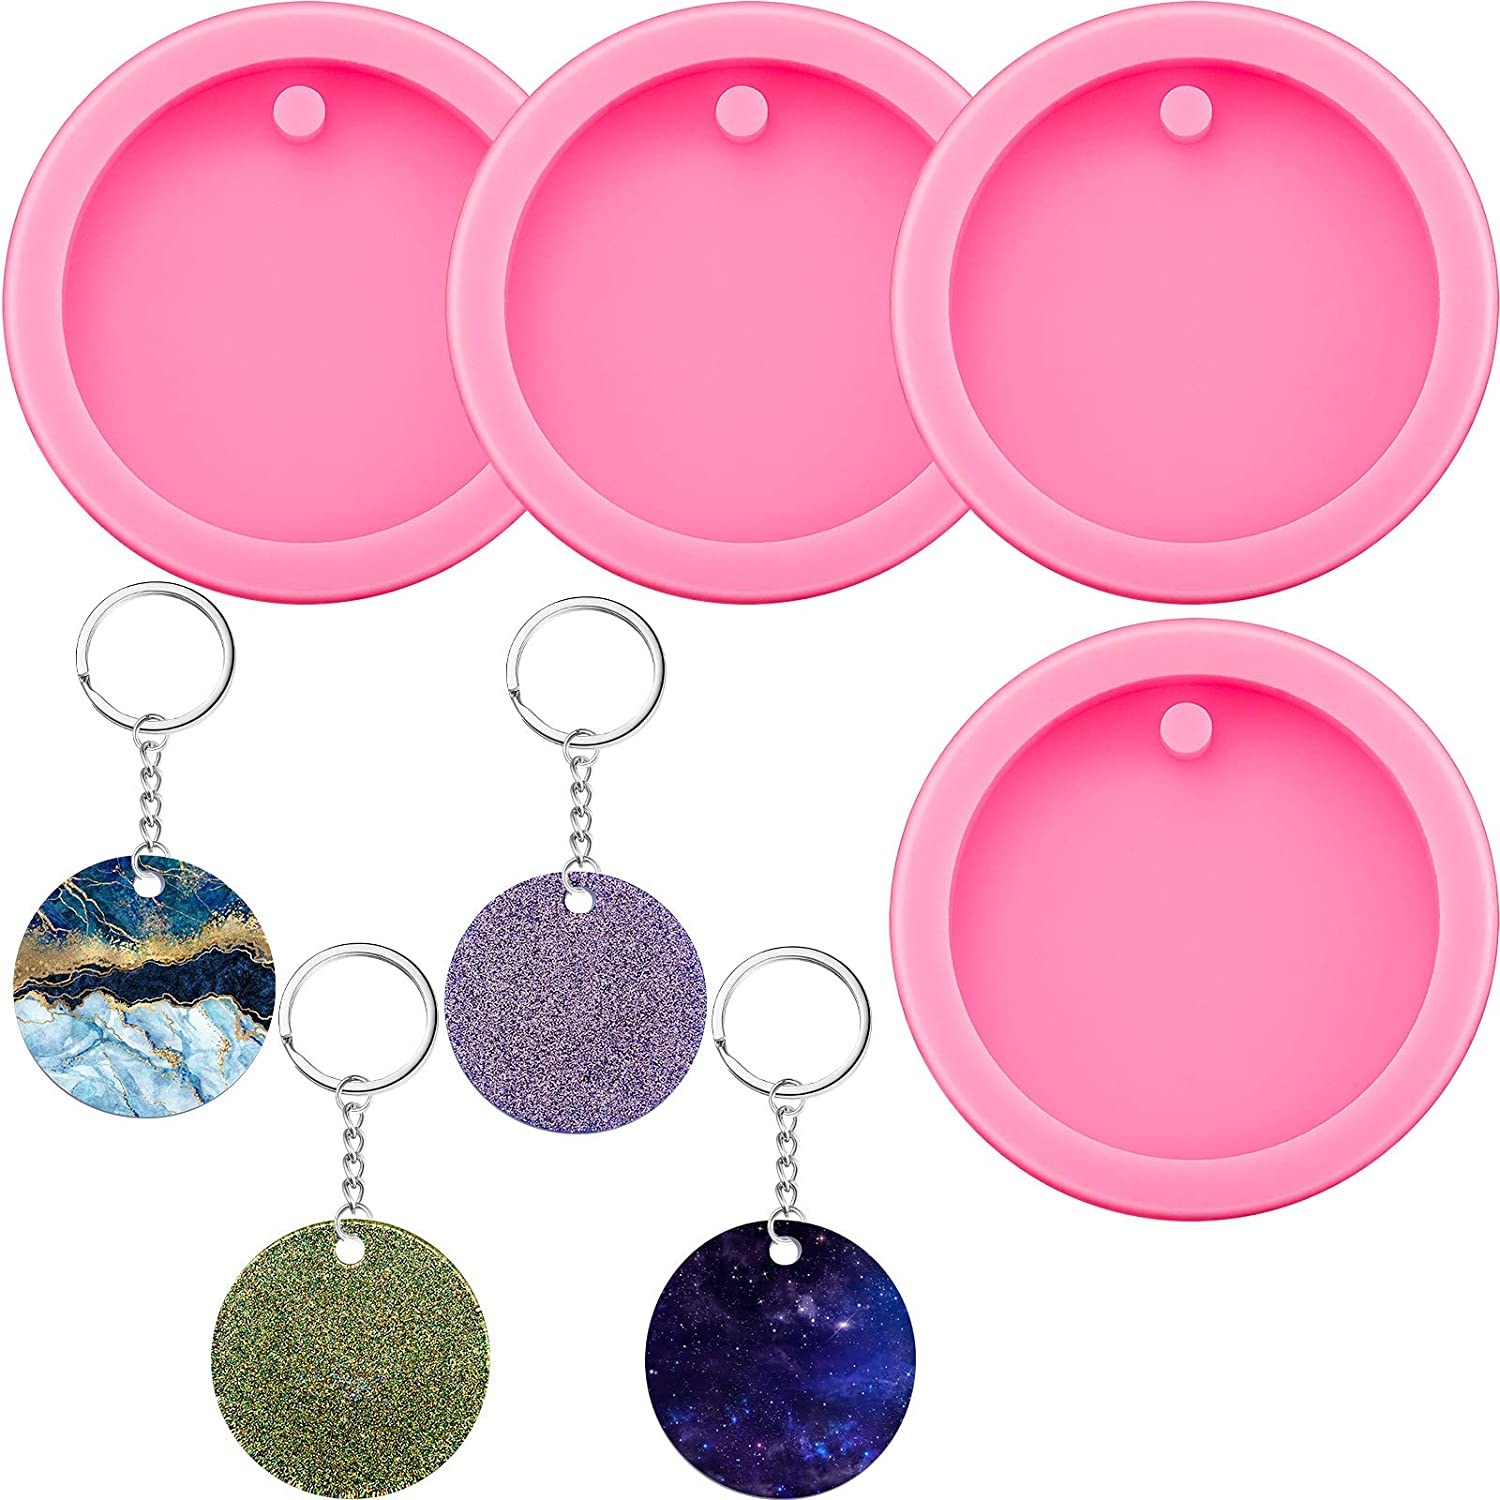 RES1004 28mm 4 Pack Round Shape Pendant Clear Silicone Mold for Resin Jewelry Pendant Making